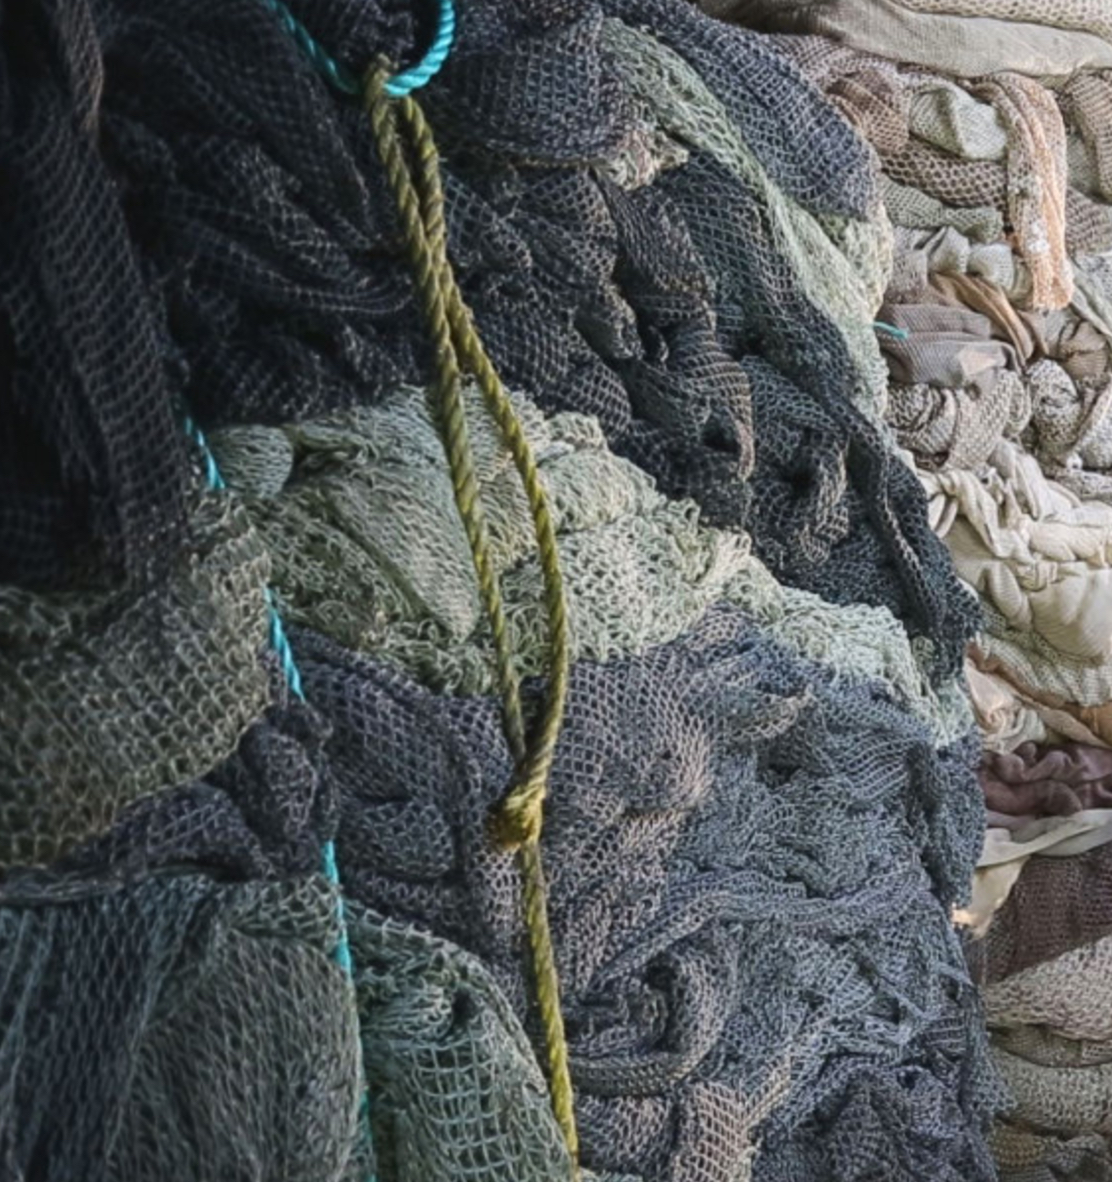 Rogue fishing nets collected from the open ocean.